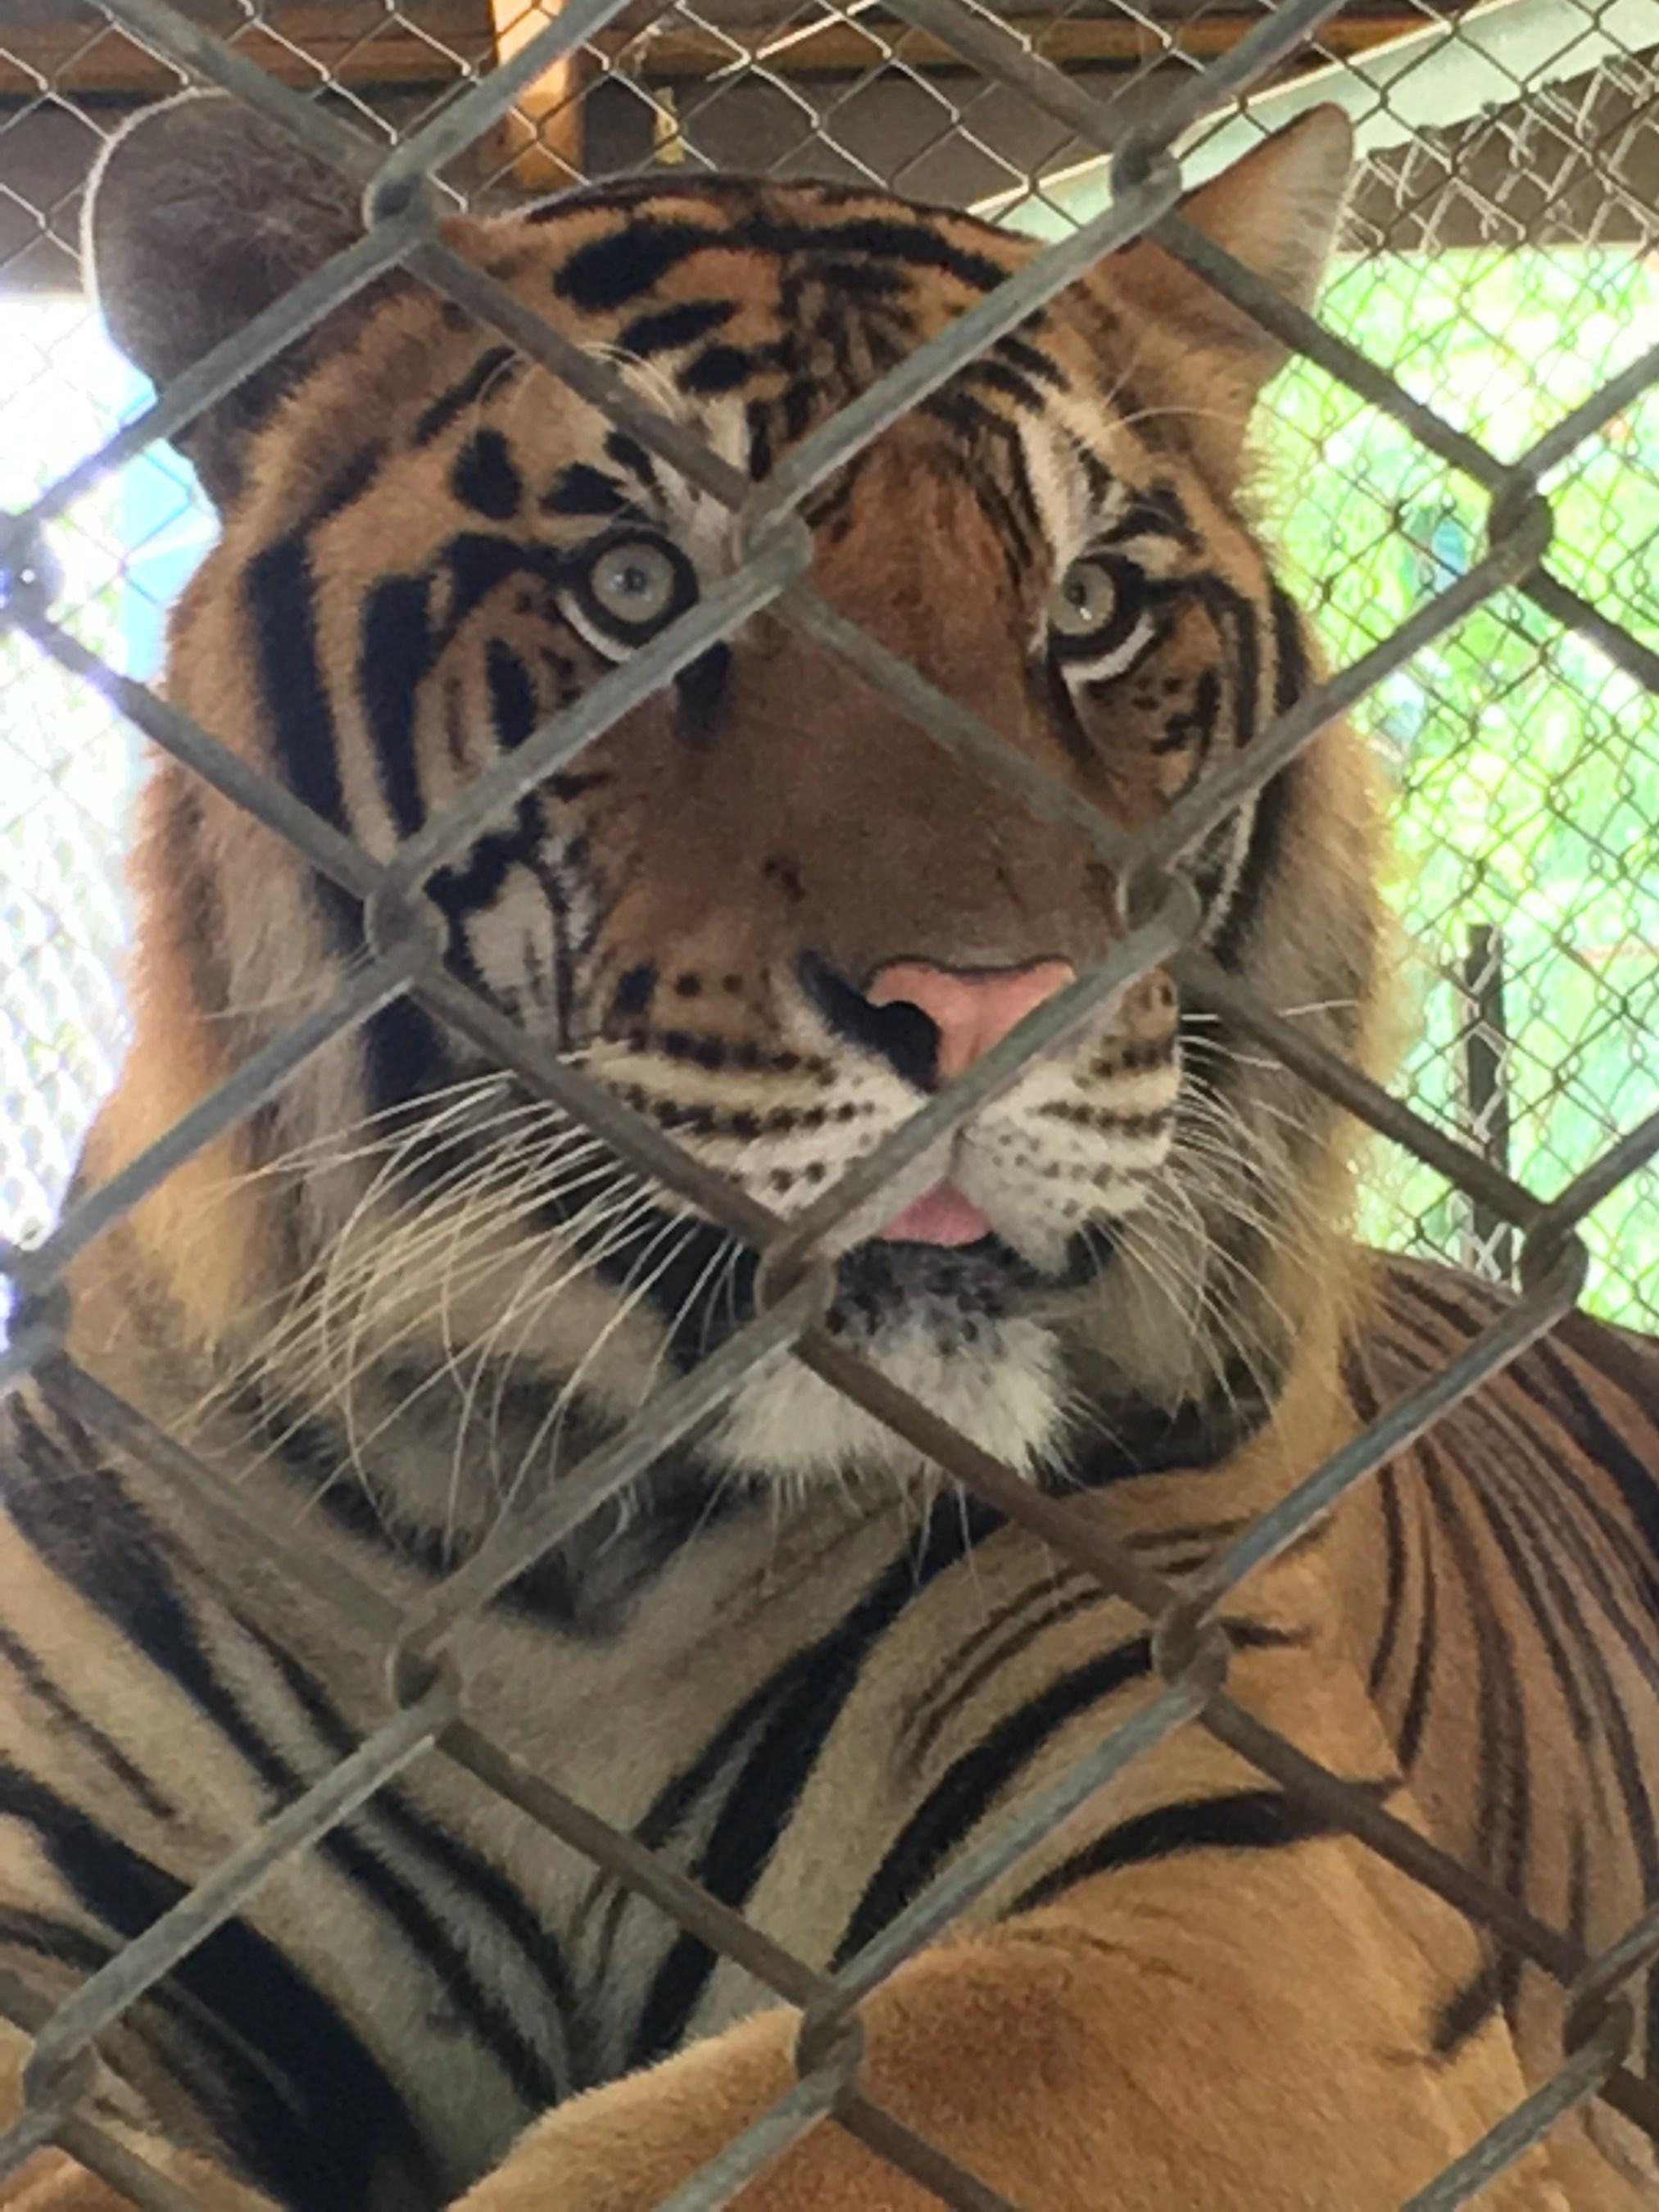 Captive tiger at a tourist facility in Thailand. World Animal Protection believes that wild animals belong in the wild and should not be used for our entertainment.